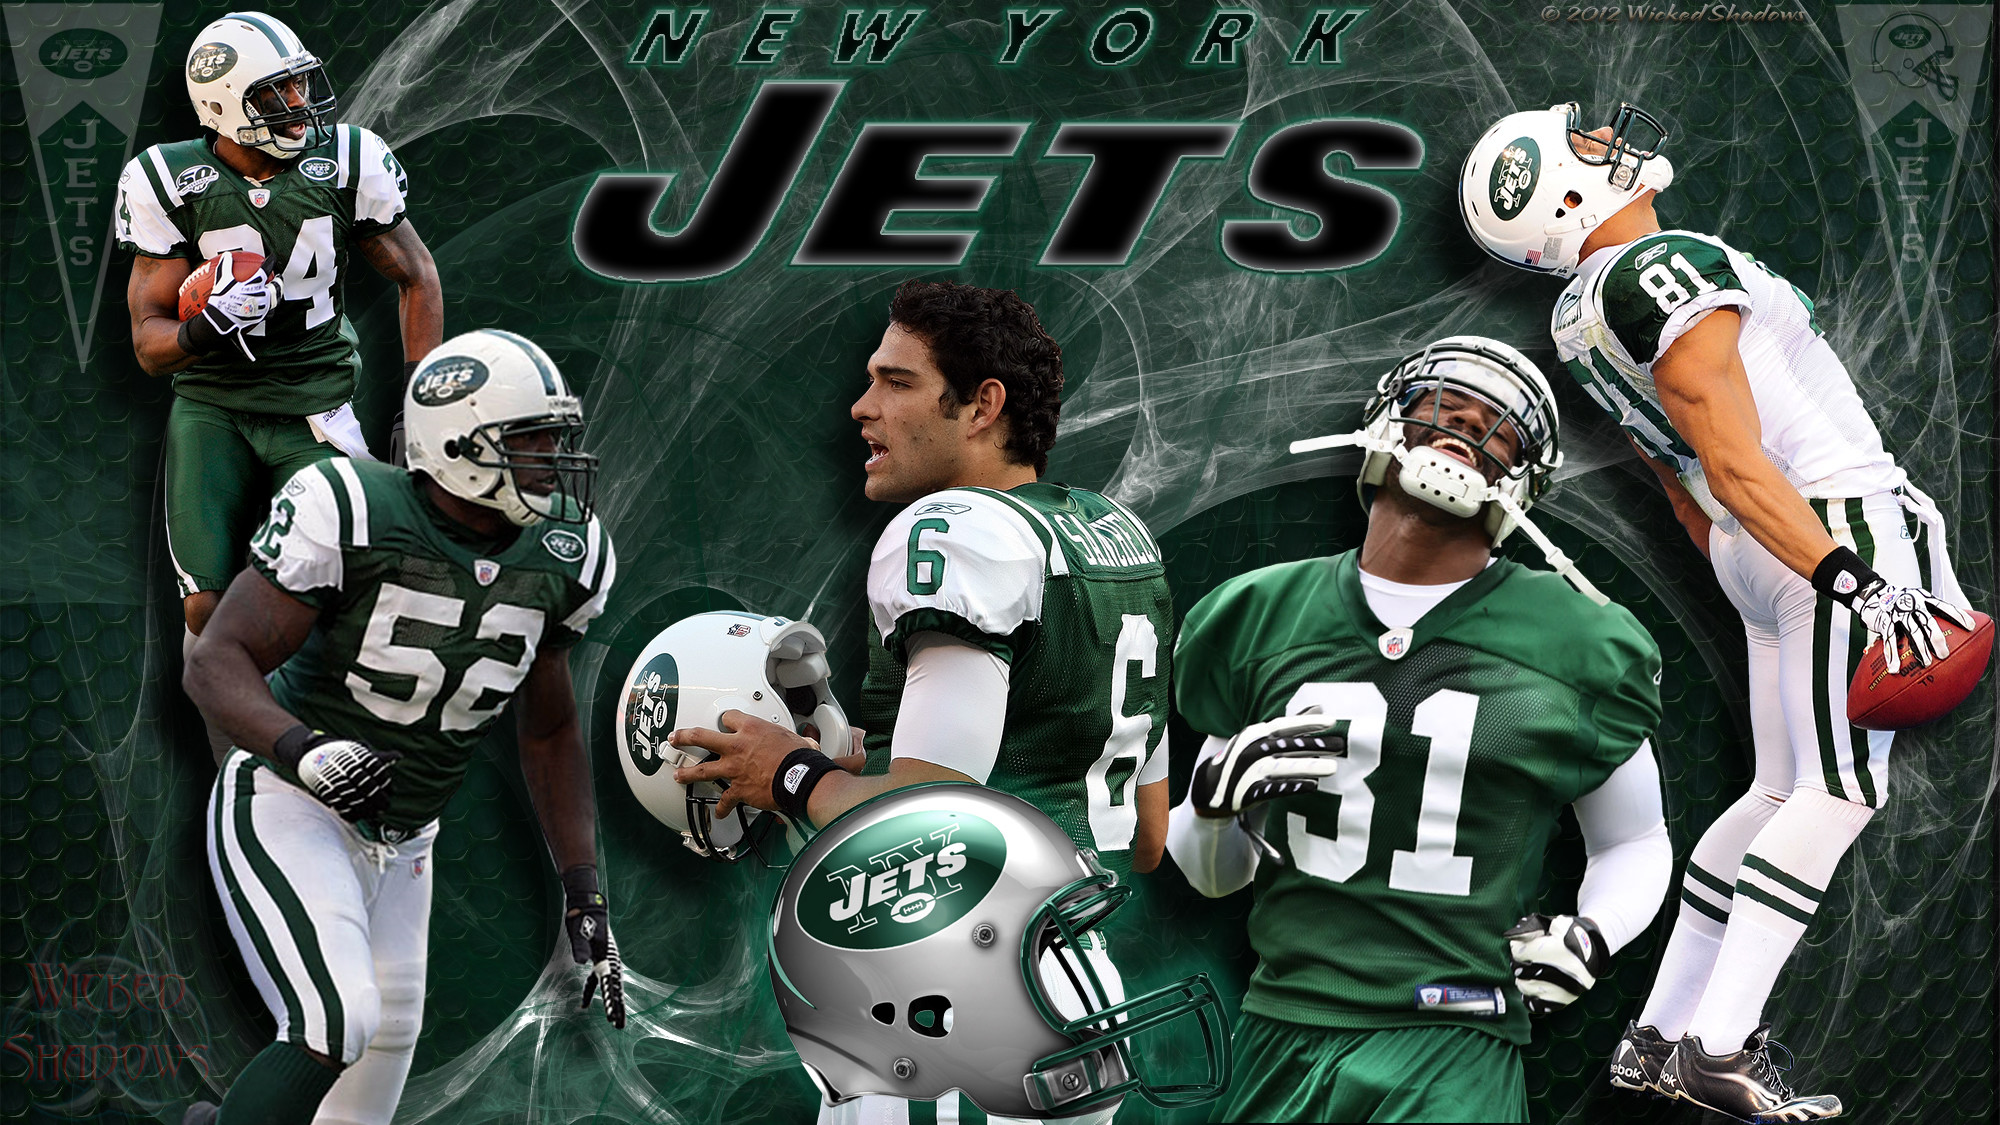 2000x1125 ... wallpapers by wicked shadows new york jets team wallpaper ...